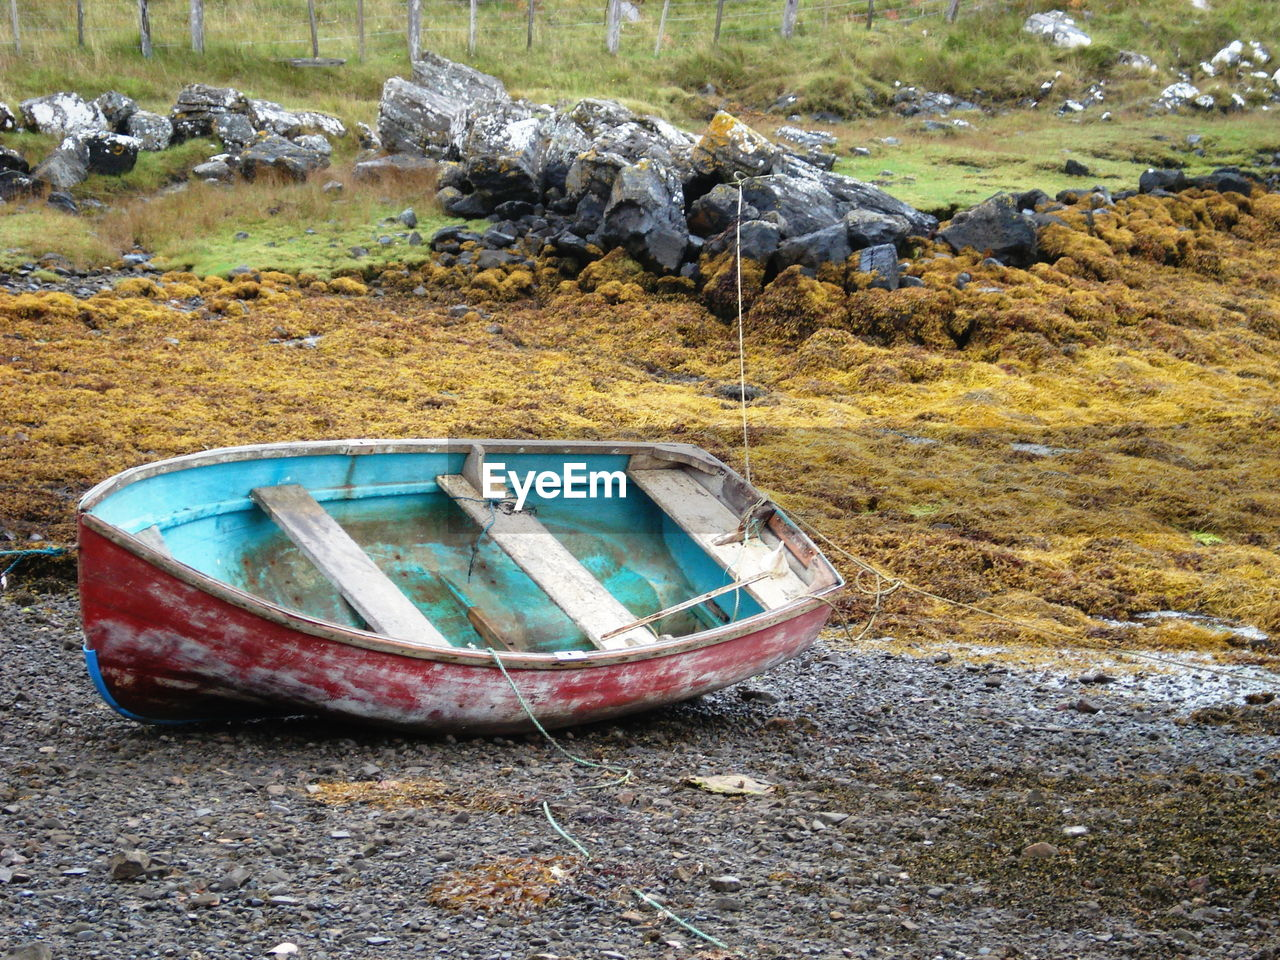 nautical vessel, land, transportation, nature, day, mode of transportation, water, abandoned, moored, no people, rock, rock - object, beach, outdoors, solid, rowboat, lake, high angle view